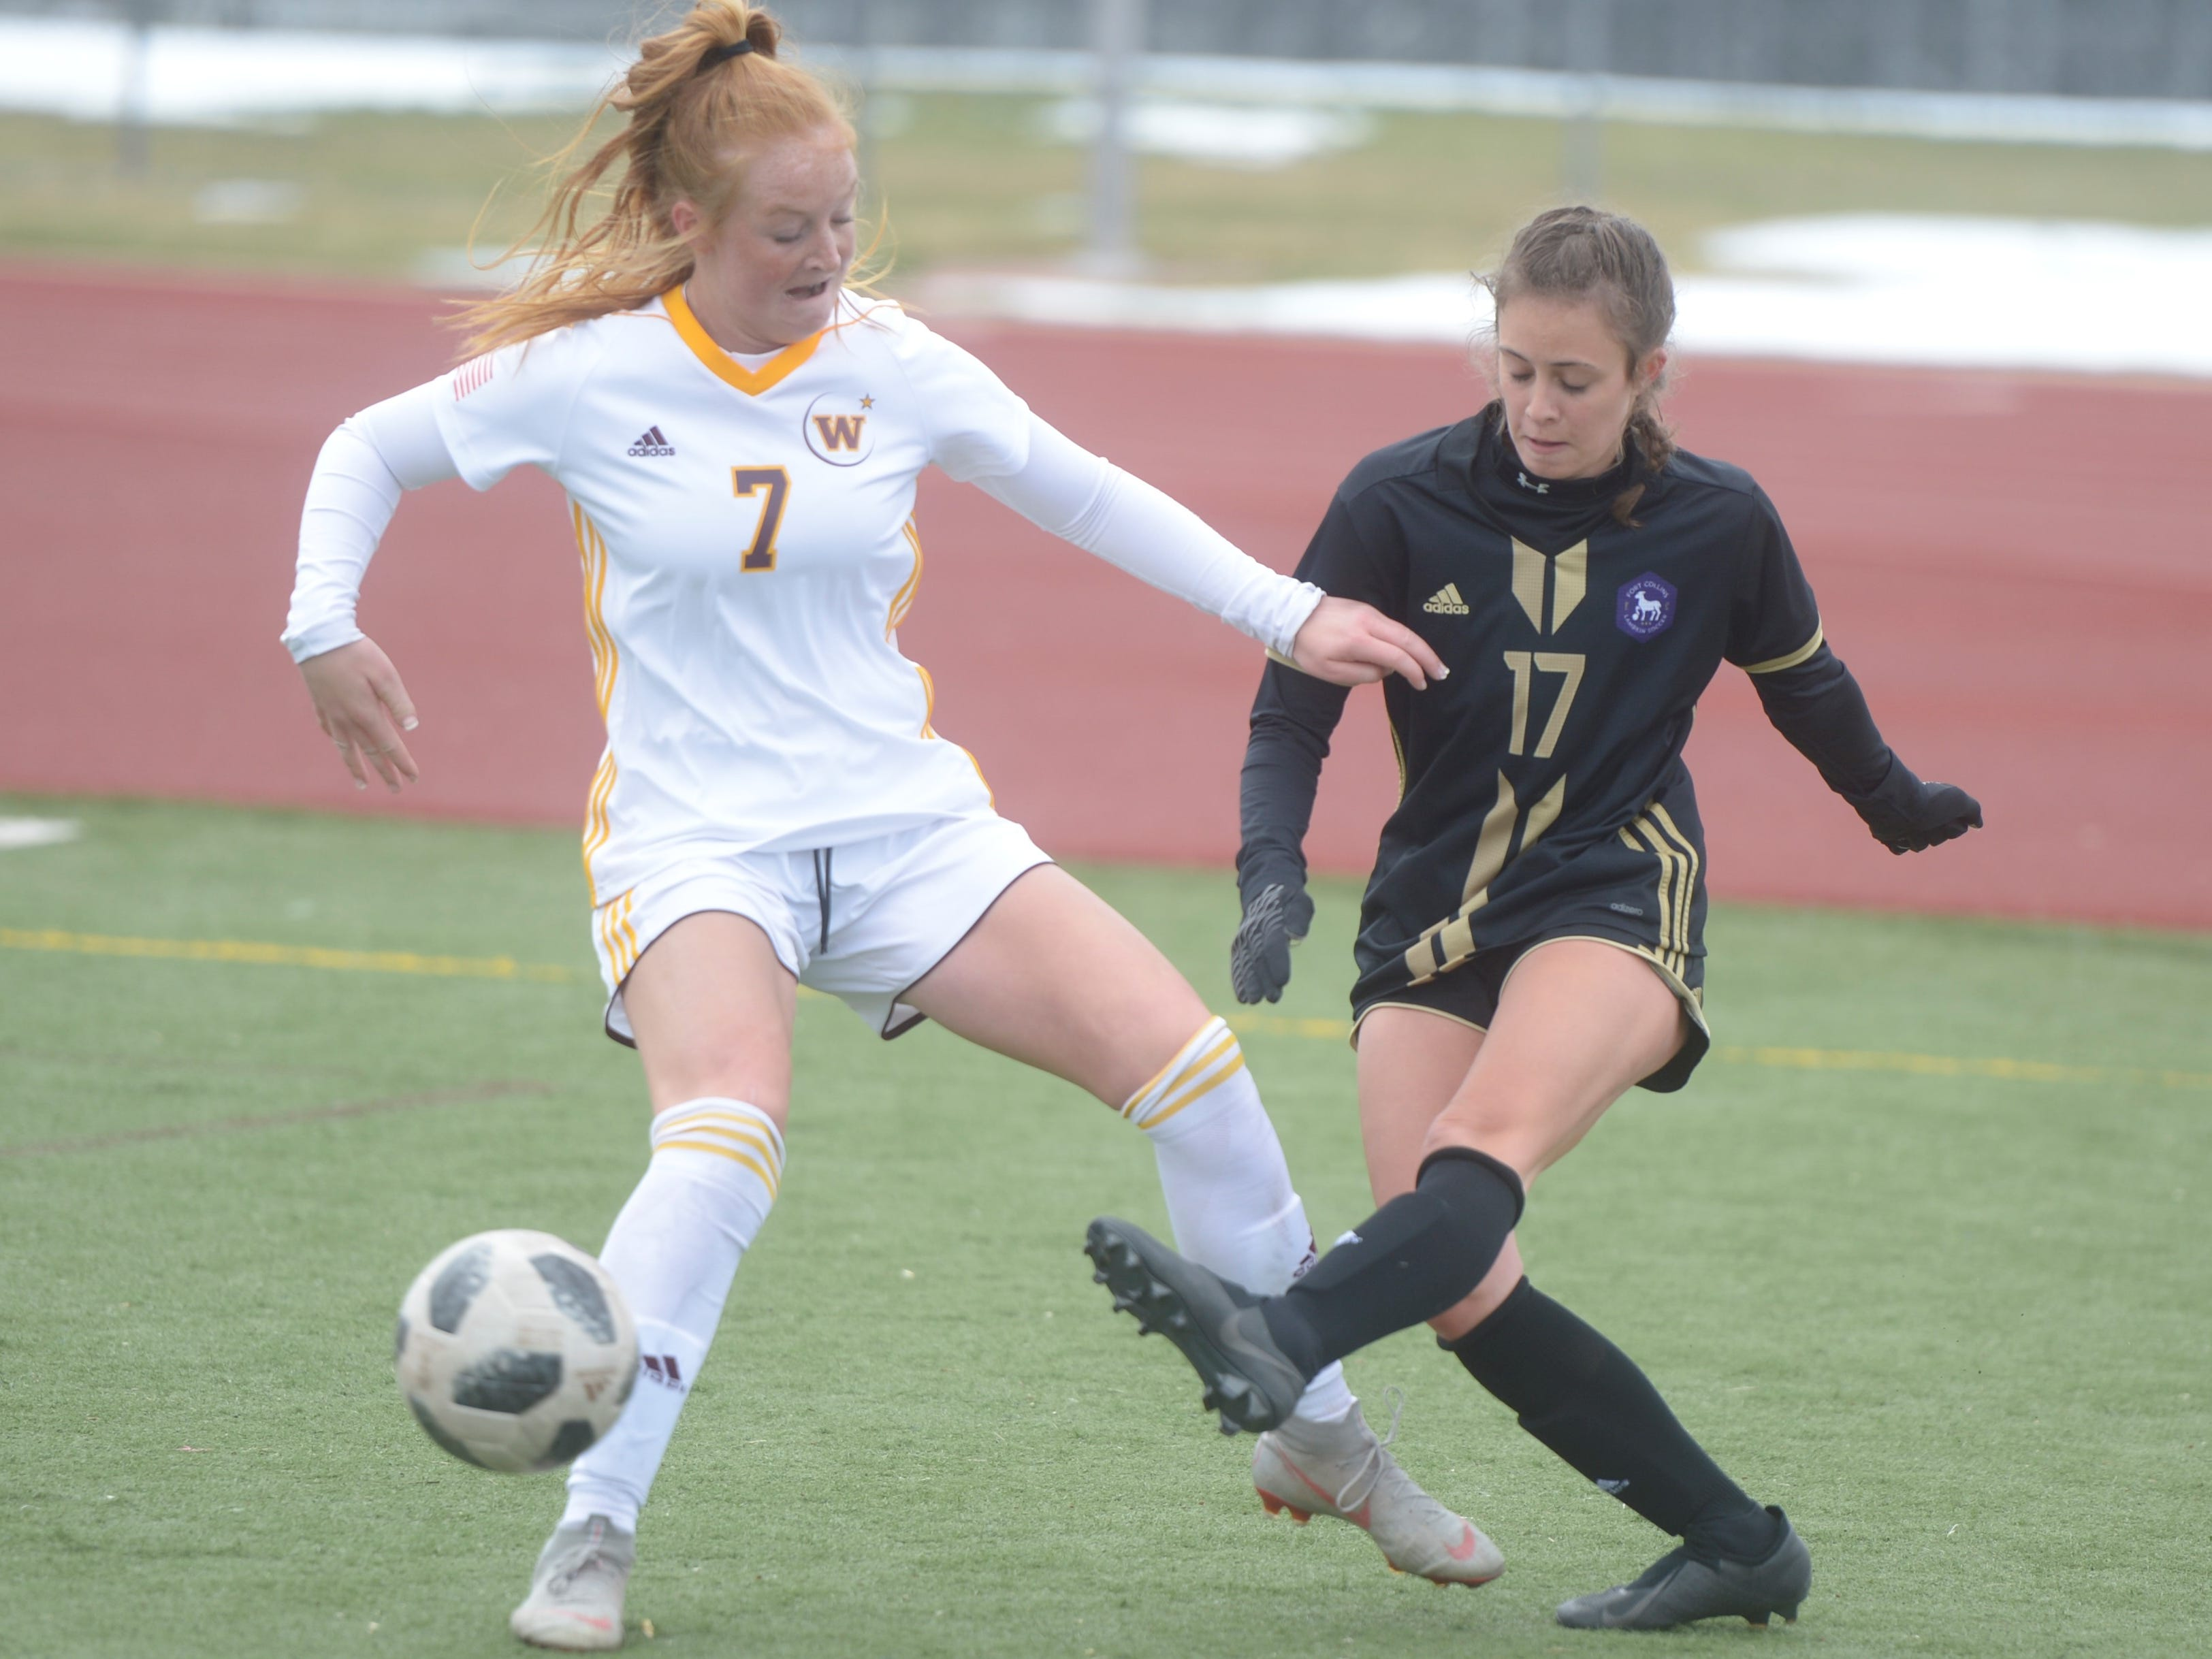 Fort Collins soccer player Stella Straubing, right, passes the ball past Windsor's Halle Moody during a game Saturday, April 13, 2019 at Fossil Ridge. Windsor won 3-0.